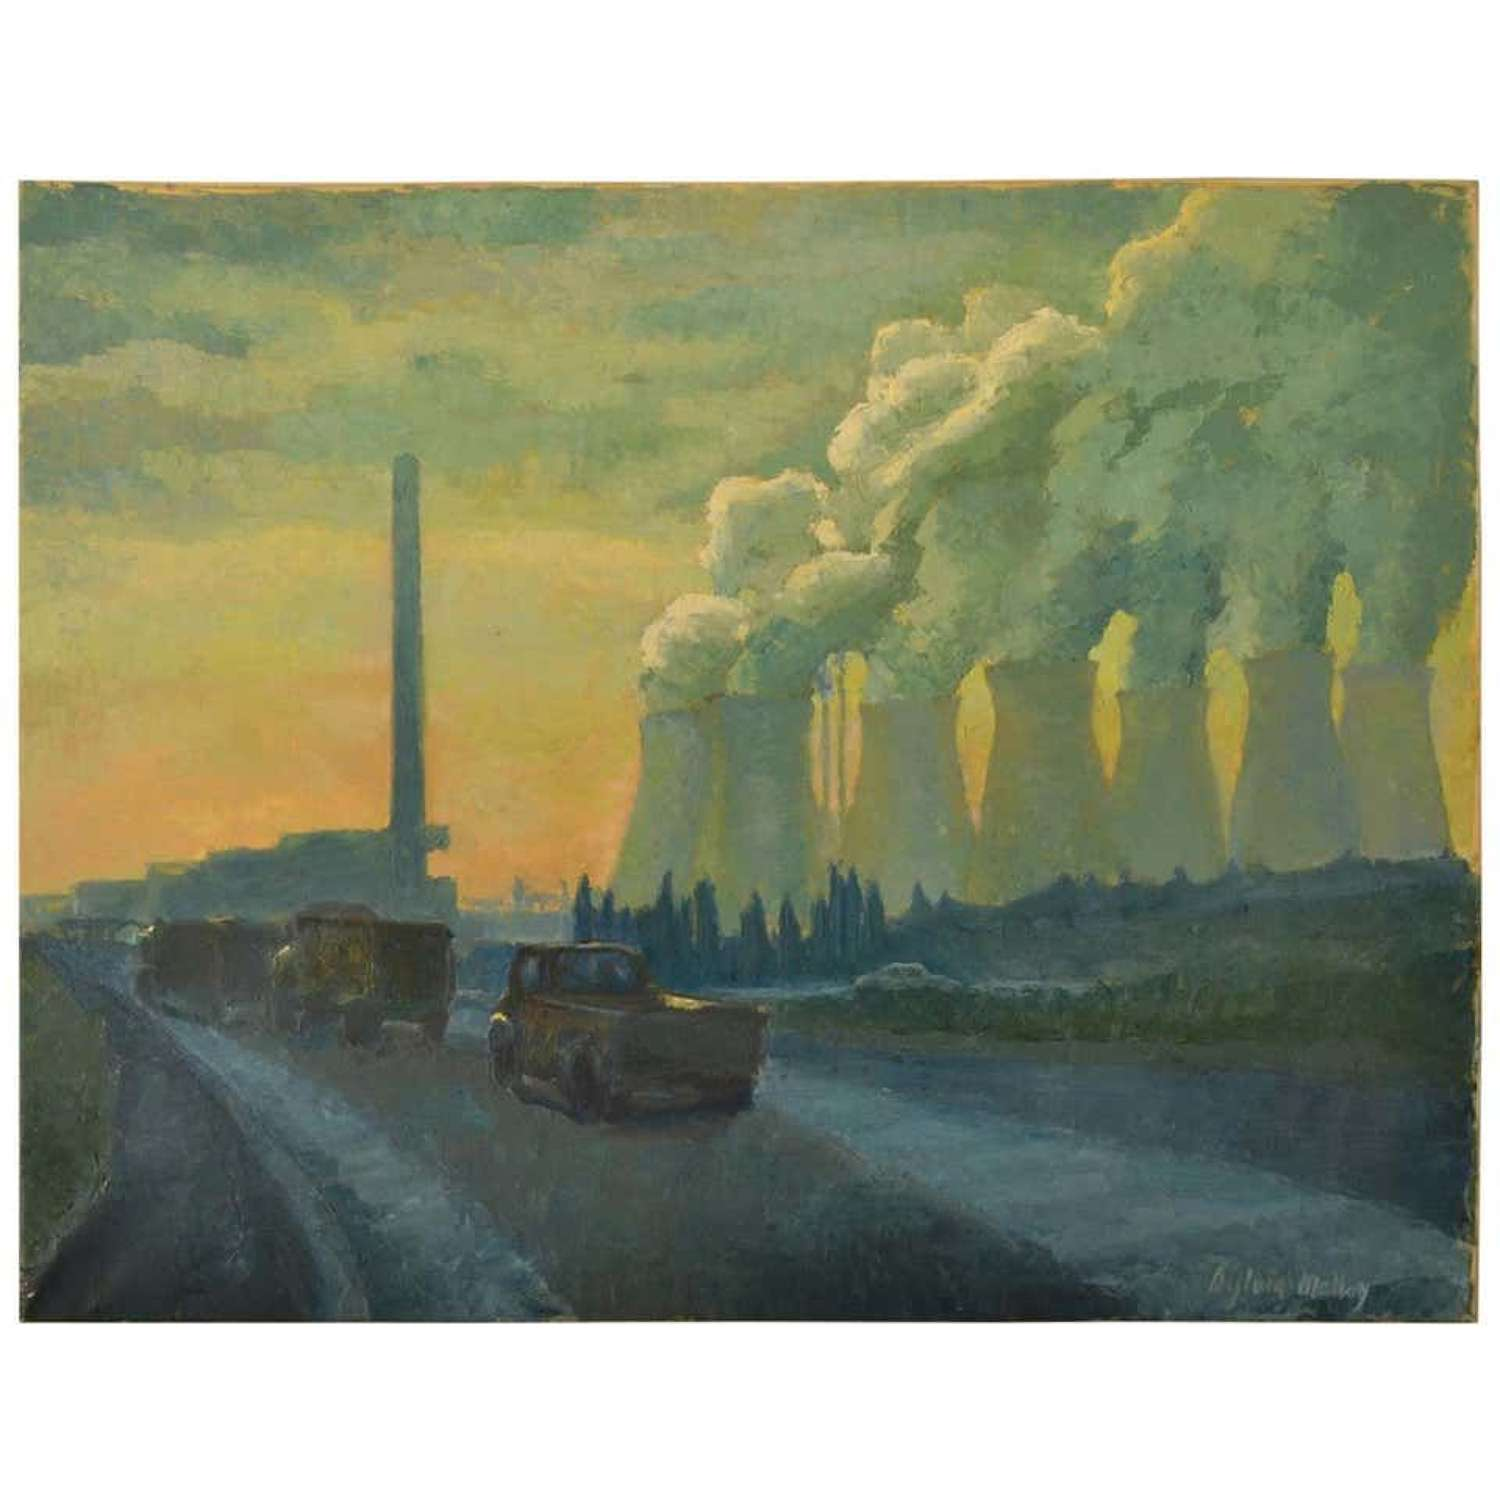 Landscape Painting of Cooling Towers by Sylvia Molloy